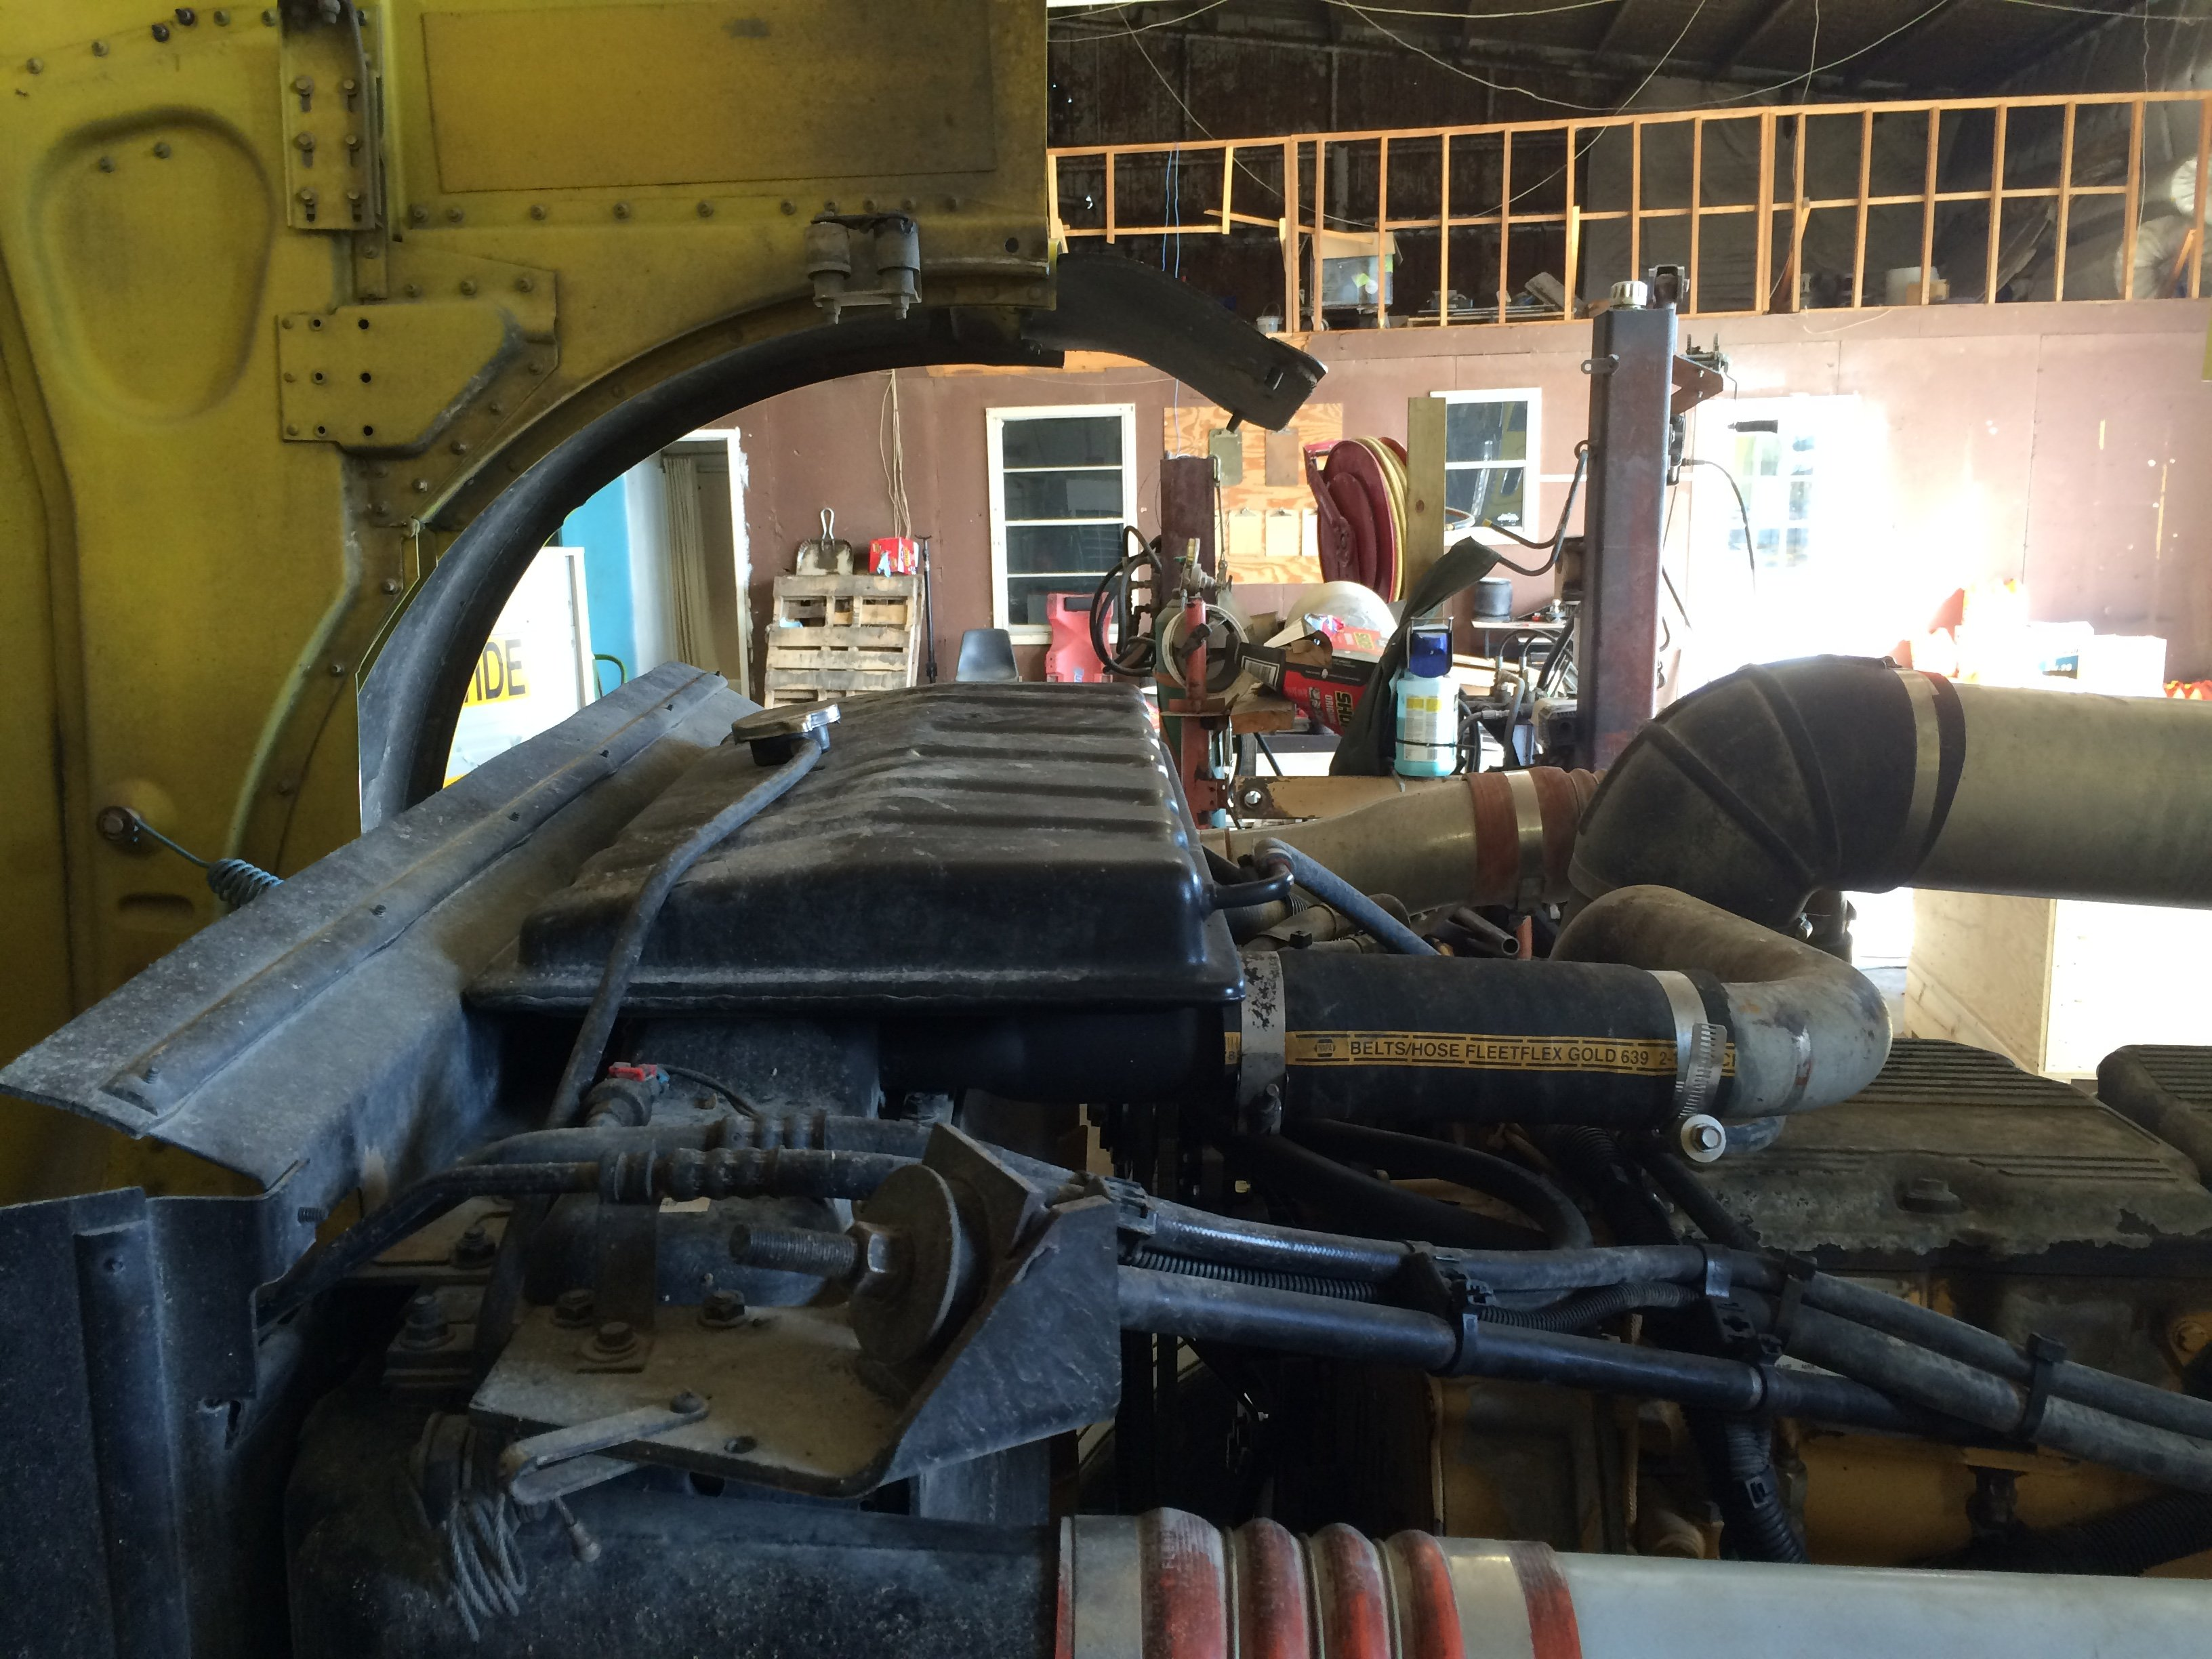 I have an 02 Peterbilt 379 with C15 cat engine fan clutch started